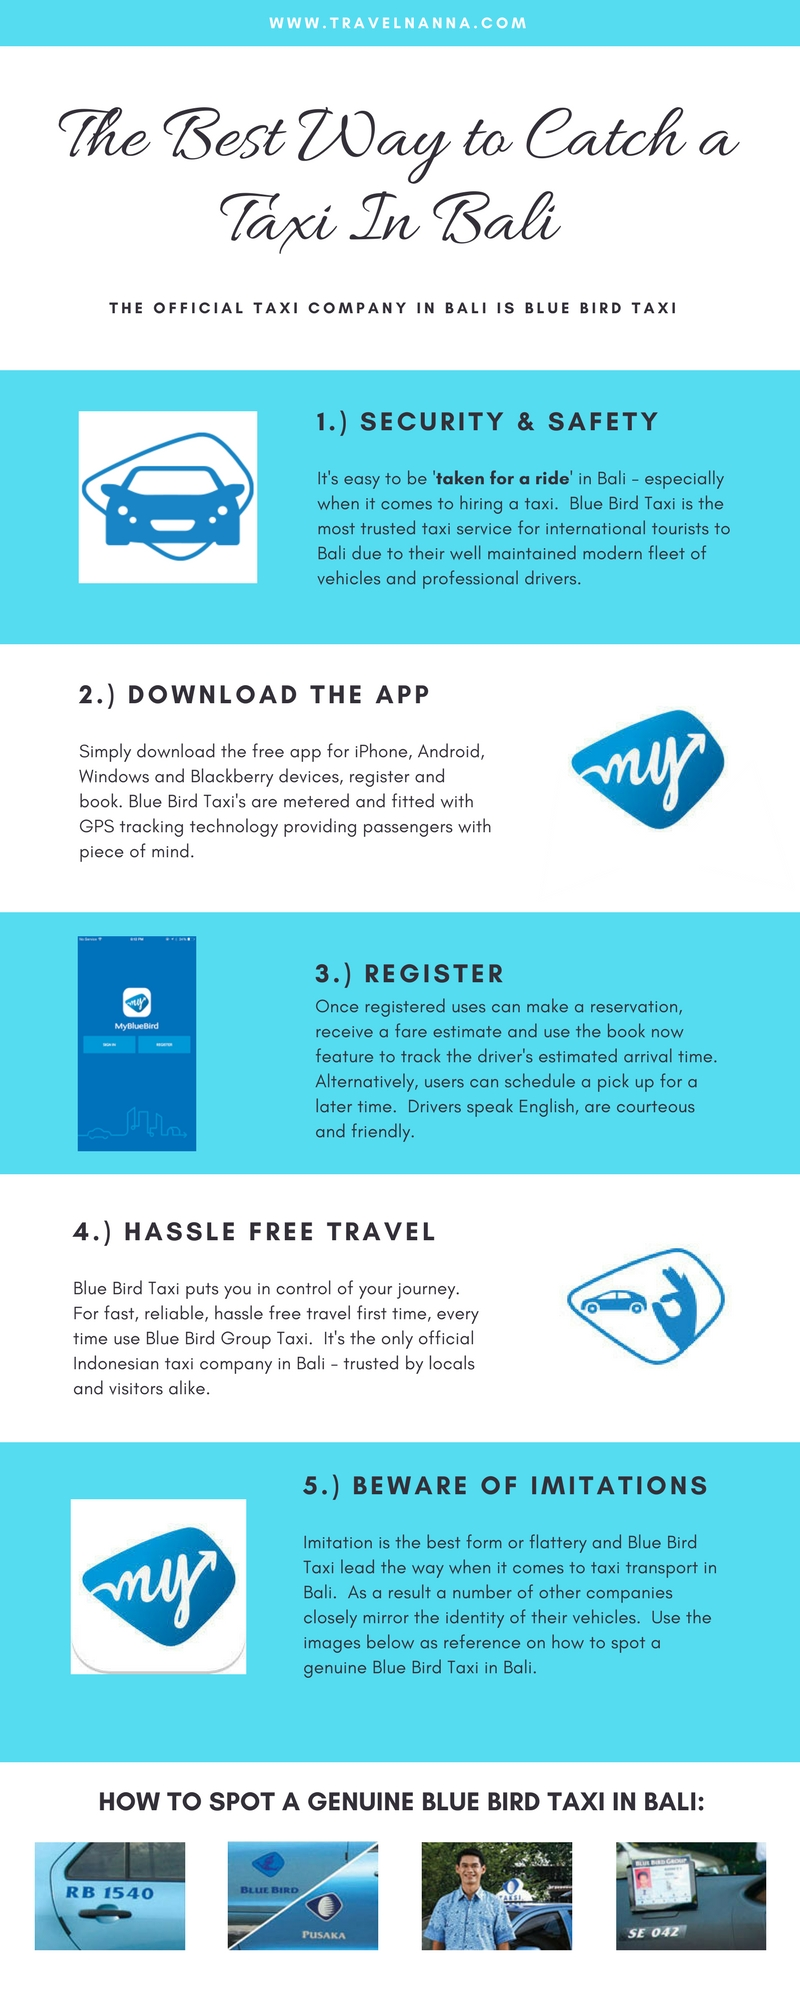 The-Best-Way-To-Catch-A-Taxi-In-Bali-Infographic-www.travelnanna.com